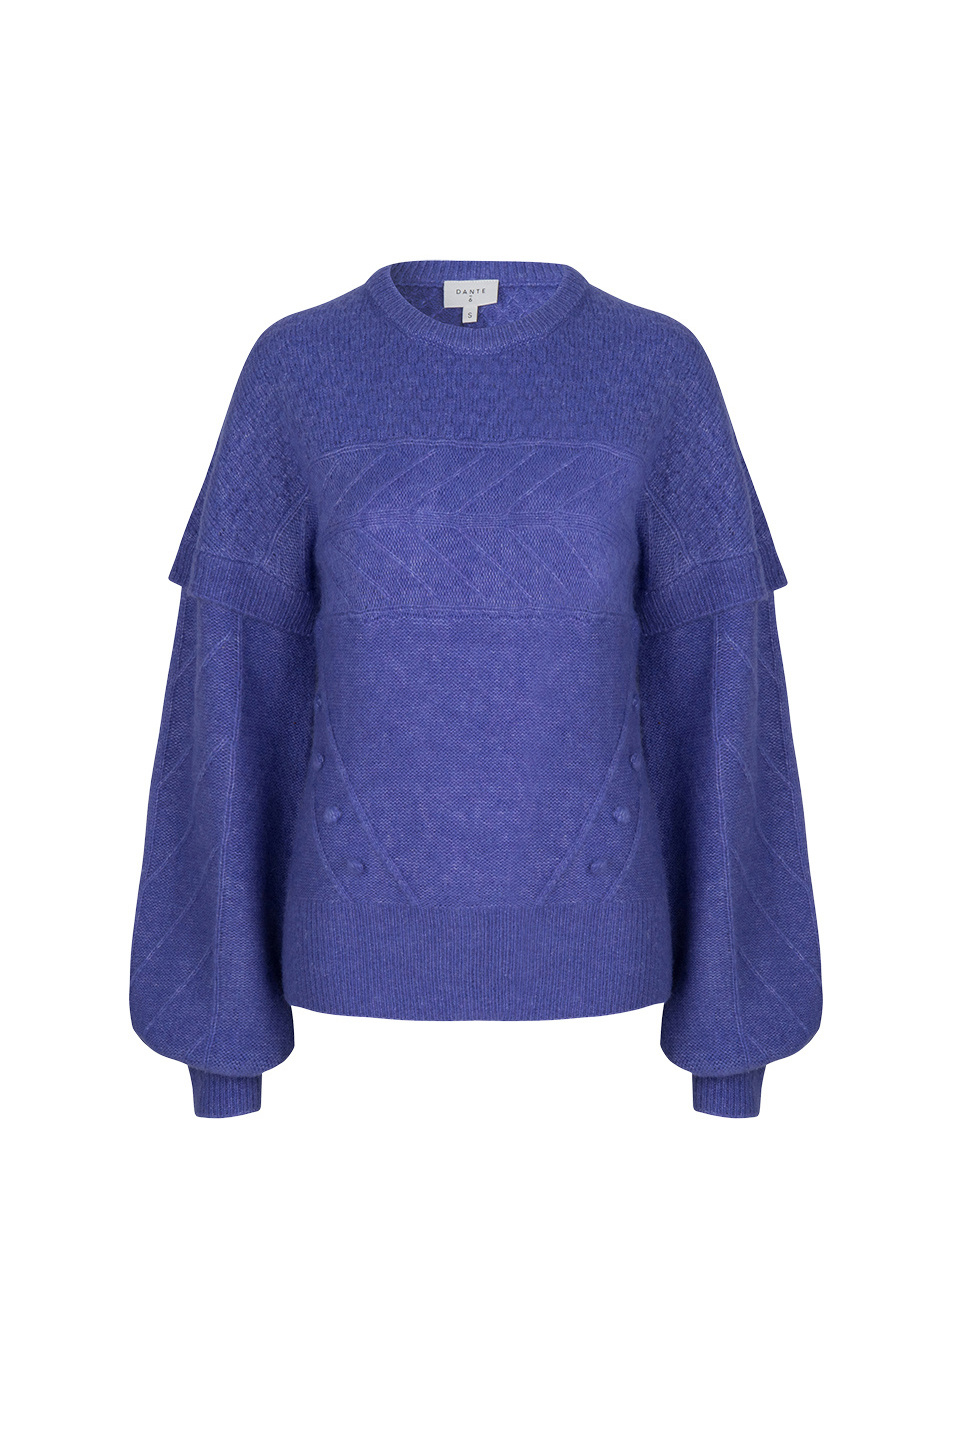 Oakly Knit Cable Sweater - Violet Ice Paars-1